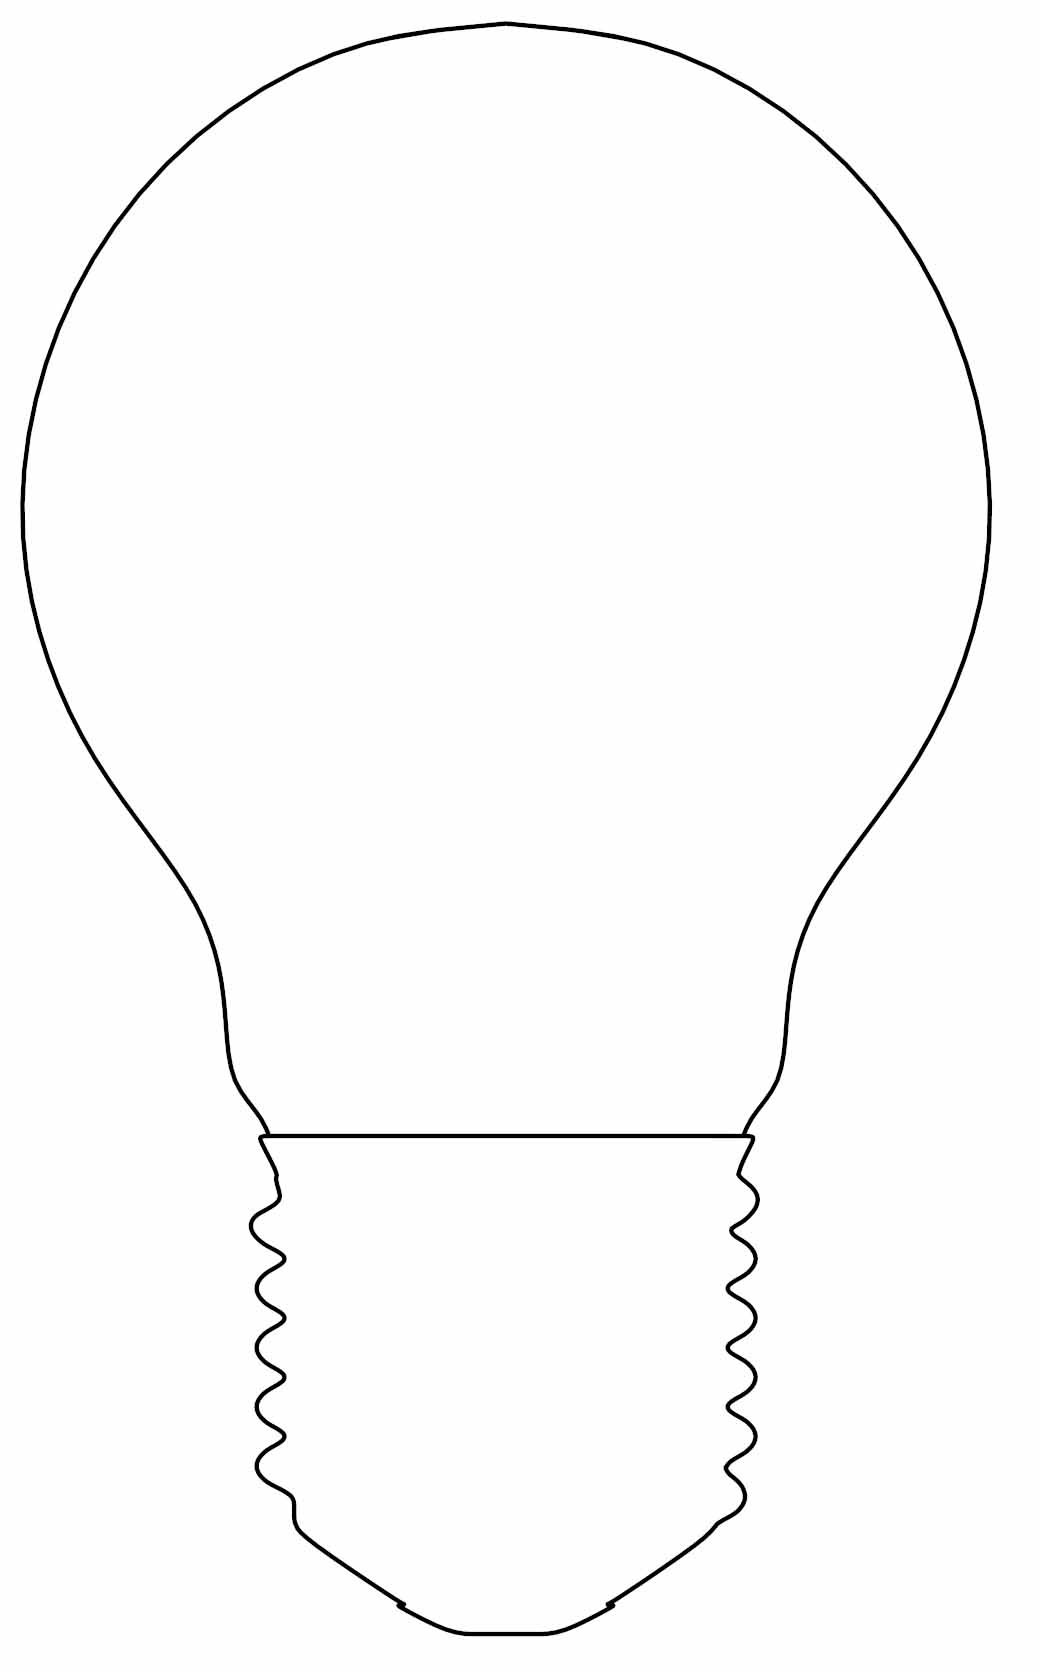 Incandescent Glass Light Bulb Outline Coloring Page